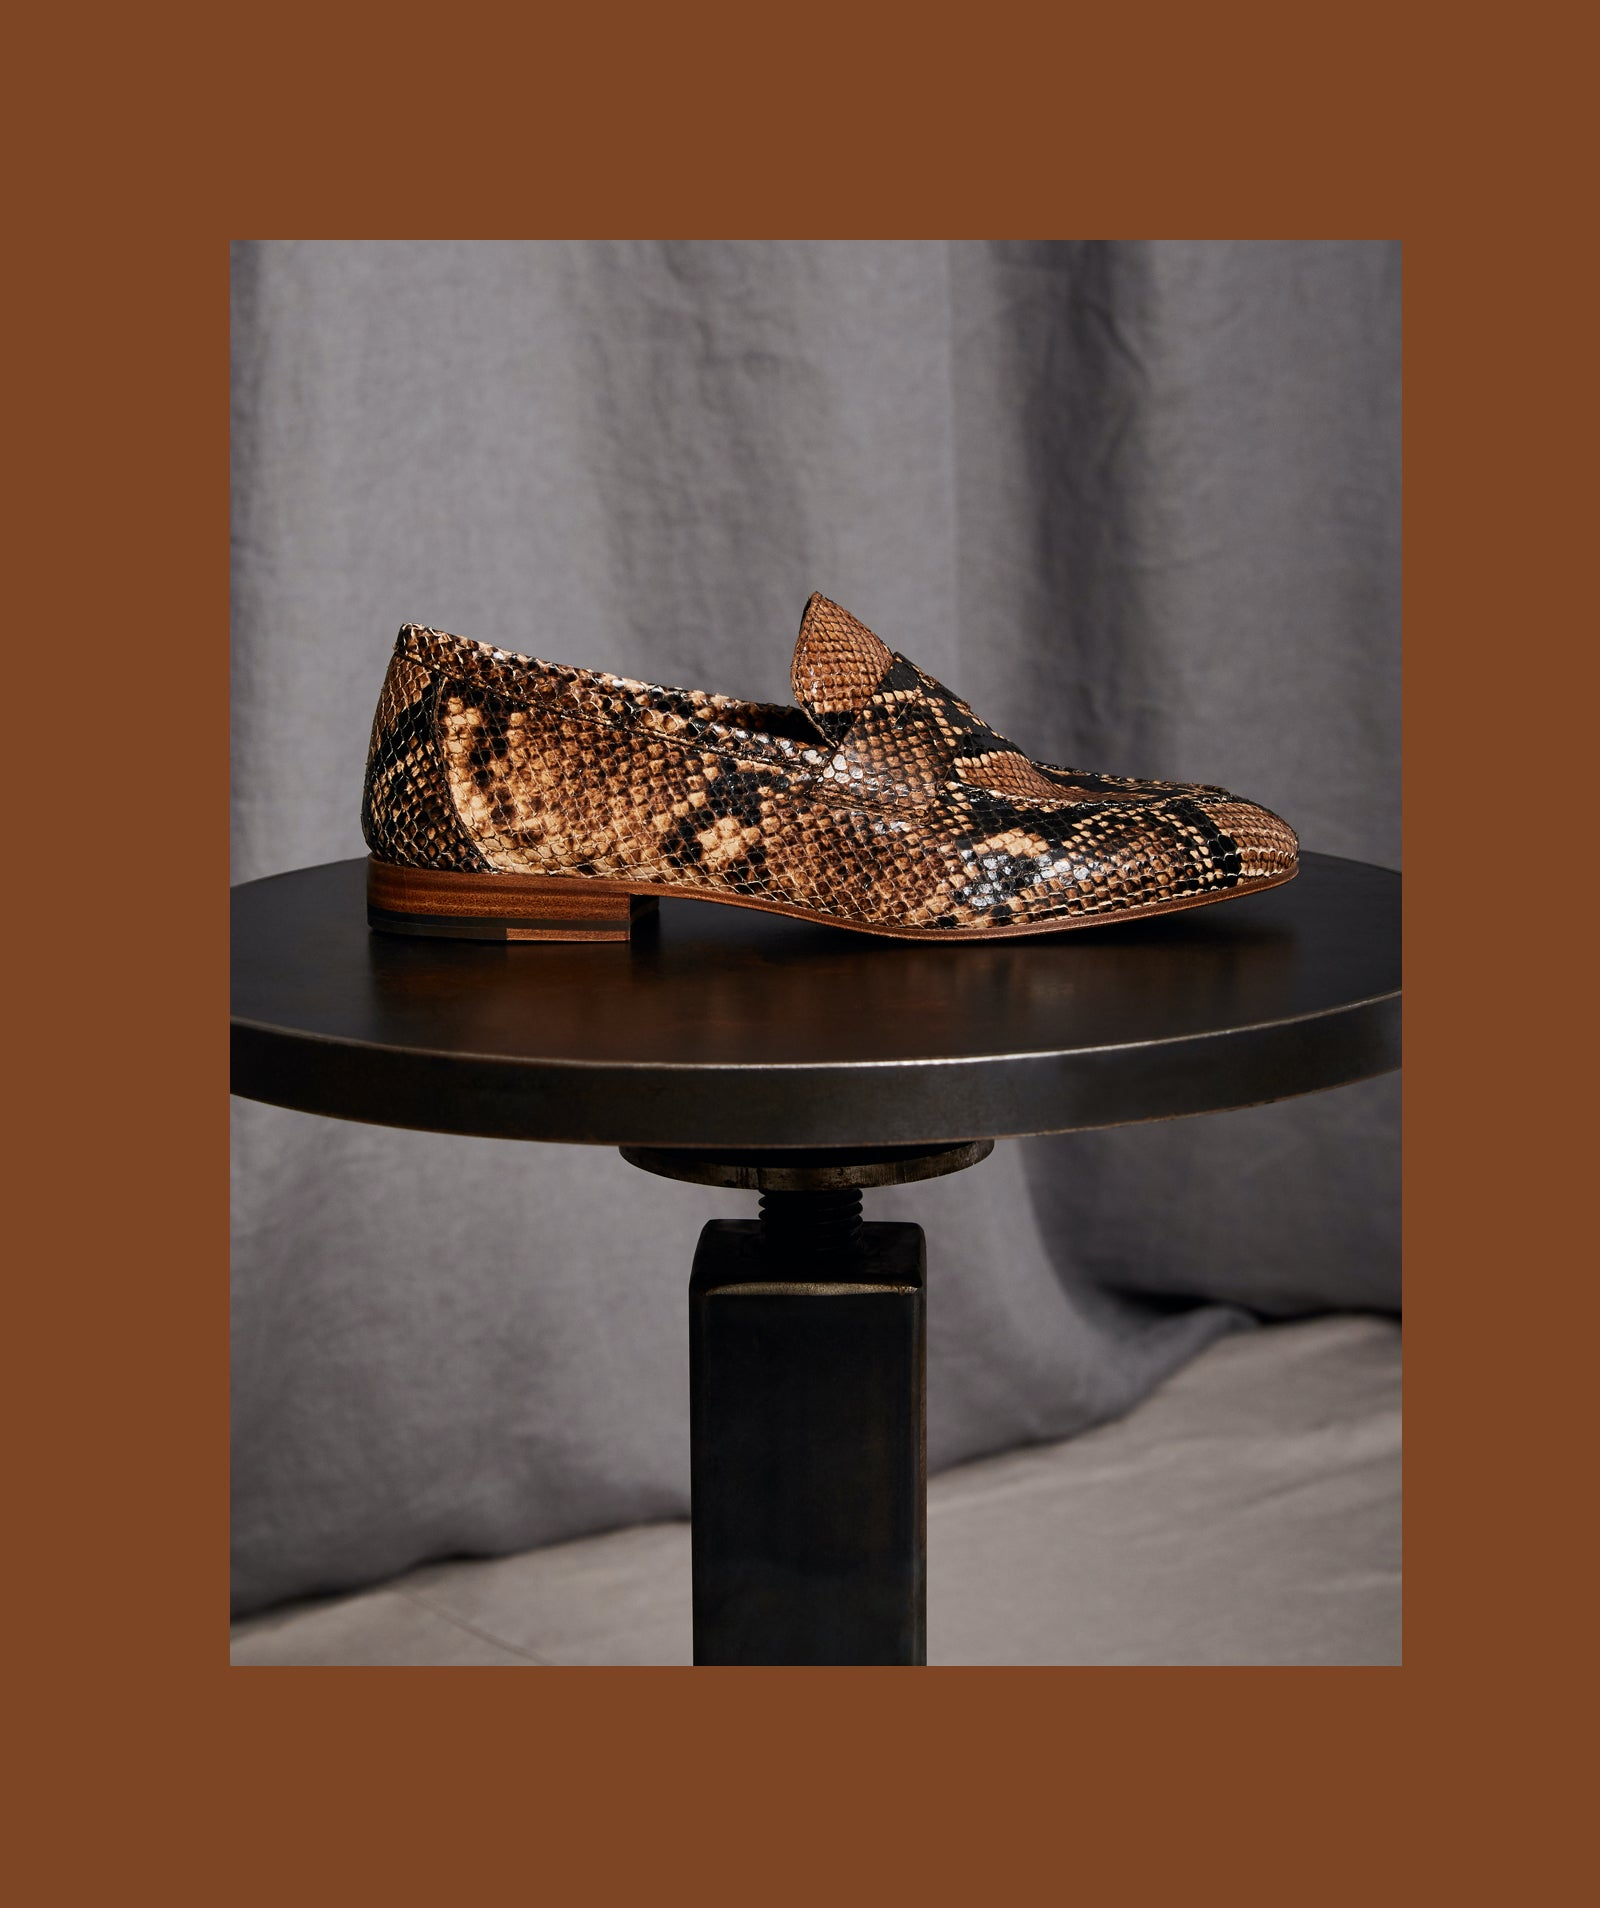 The Sacca Donna Python Printed Leather